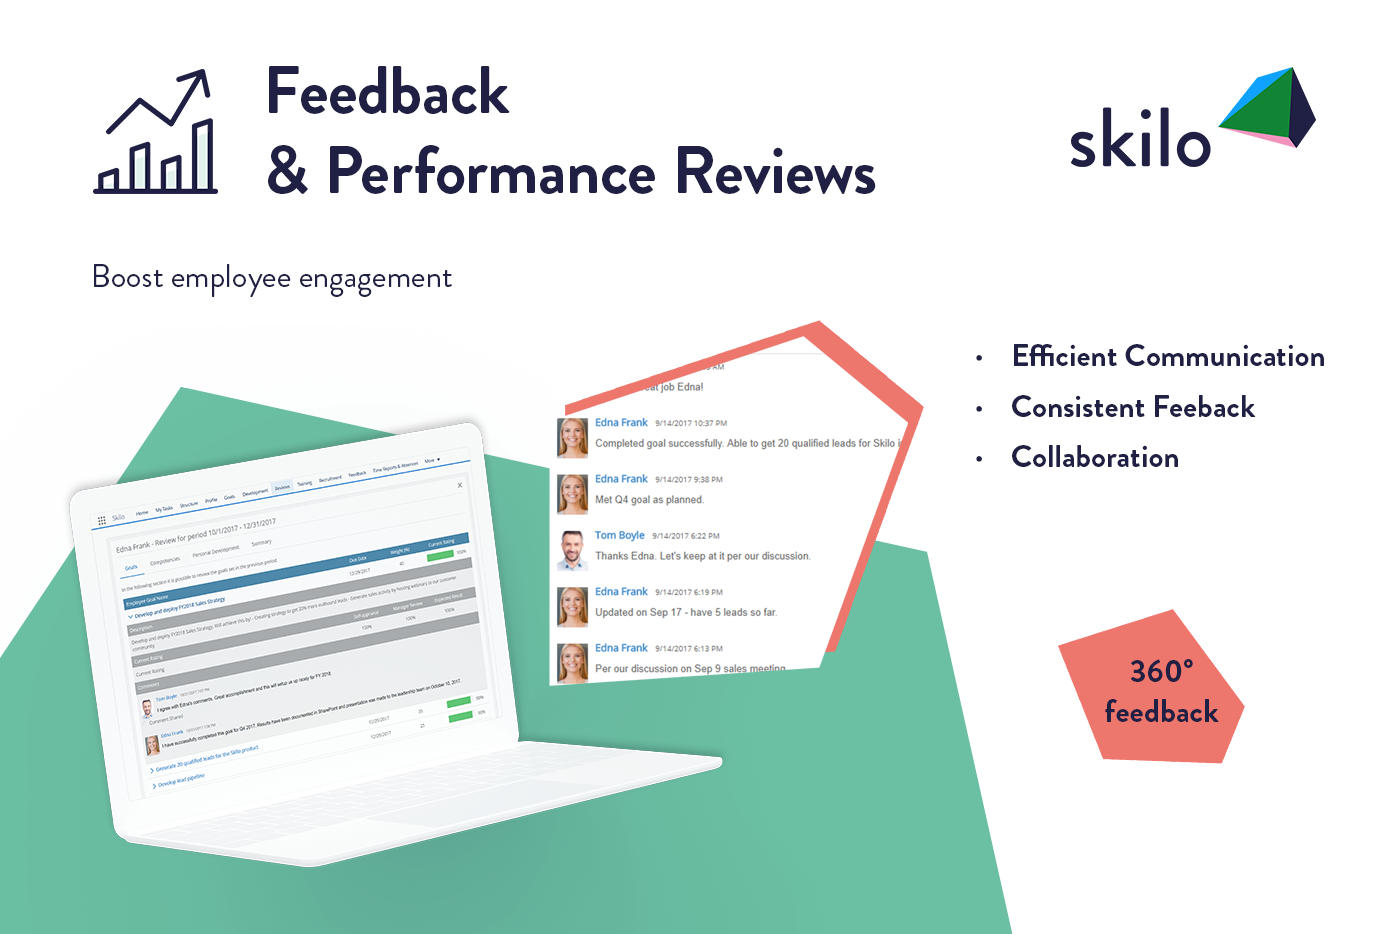 Skilo Demo - Feedback and Performance Reviews App on Salesforce®